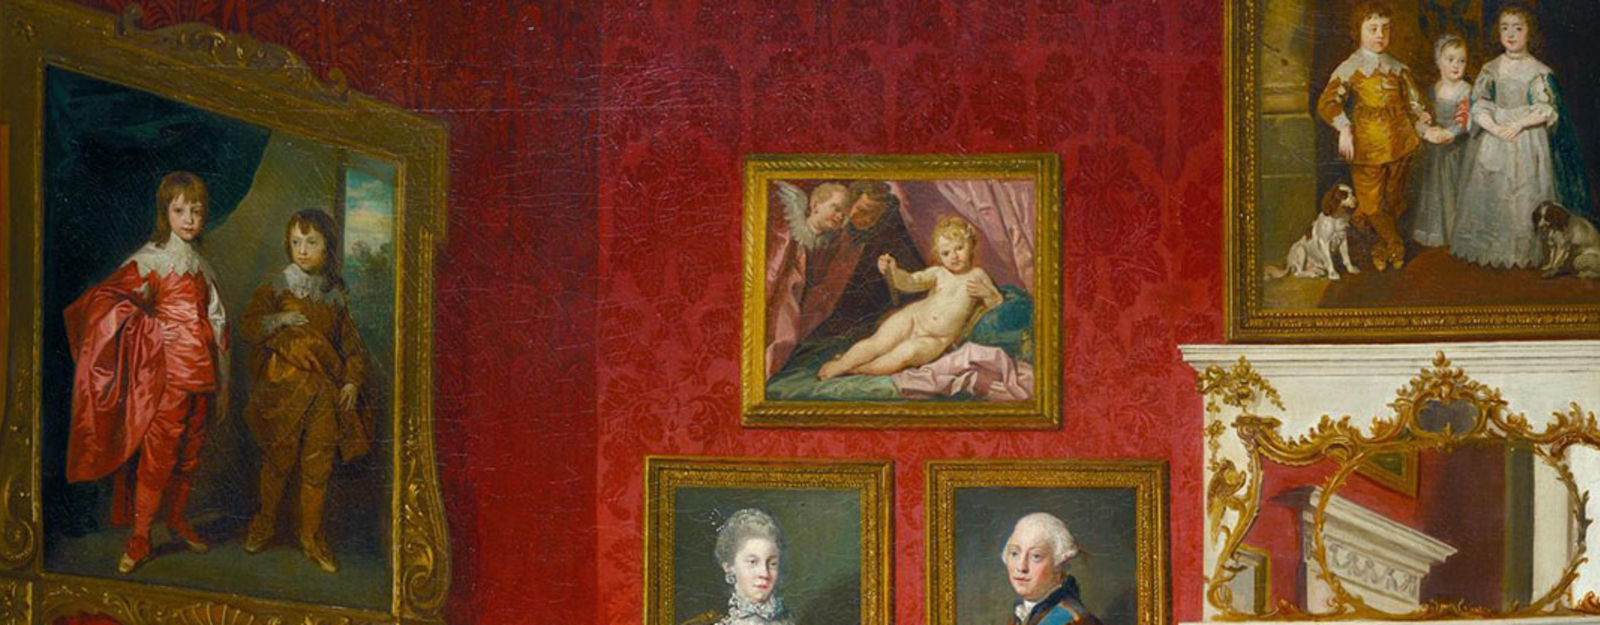 Detail from showing paintings hanging on the wall of Buckingham House